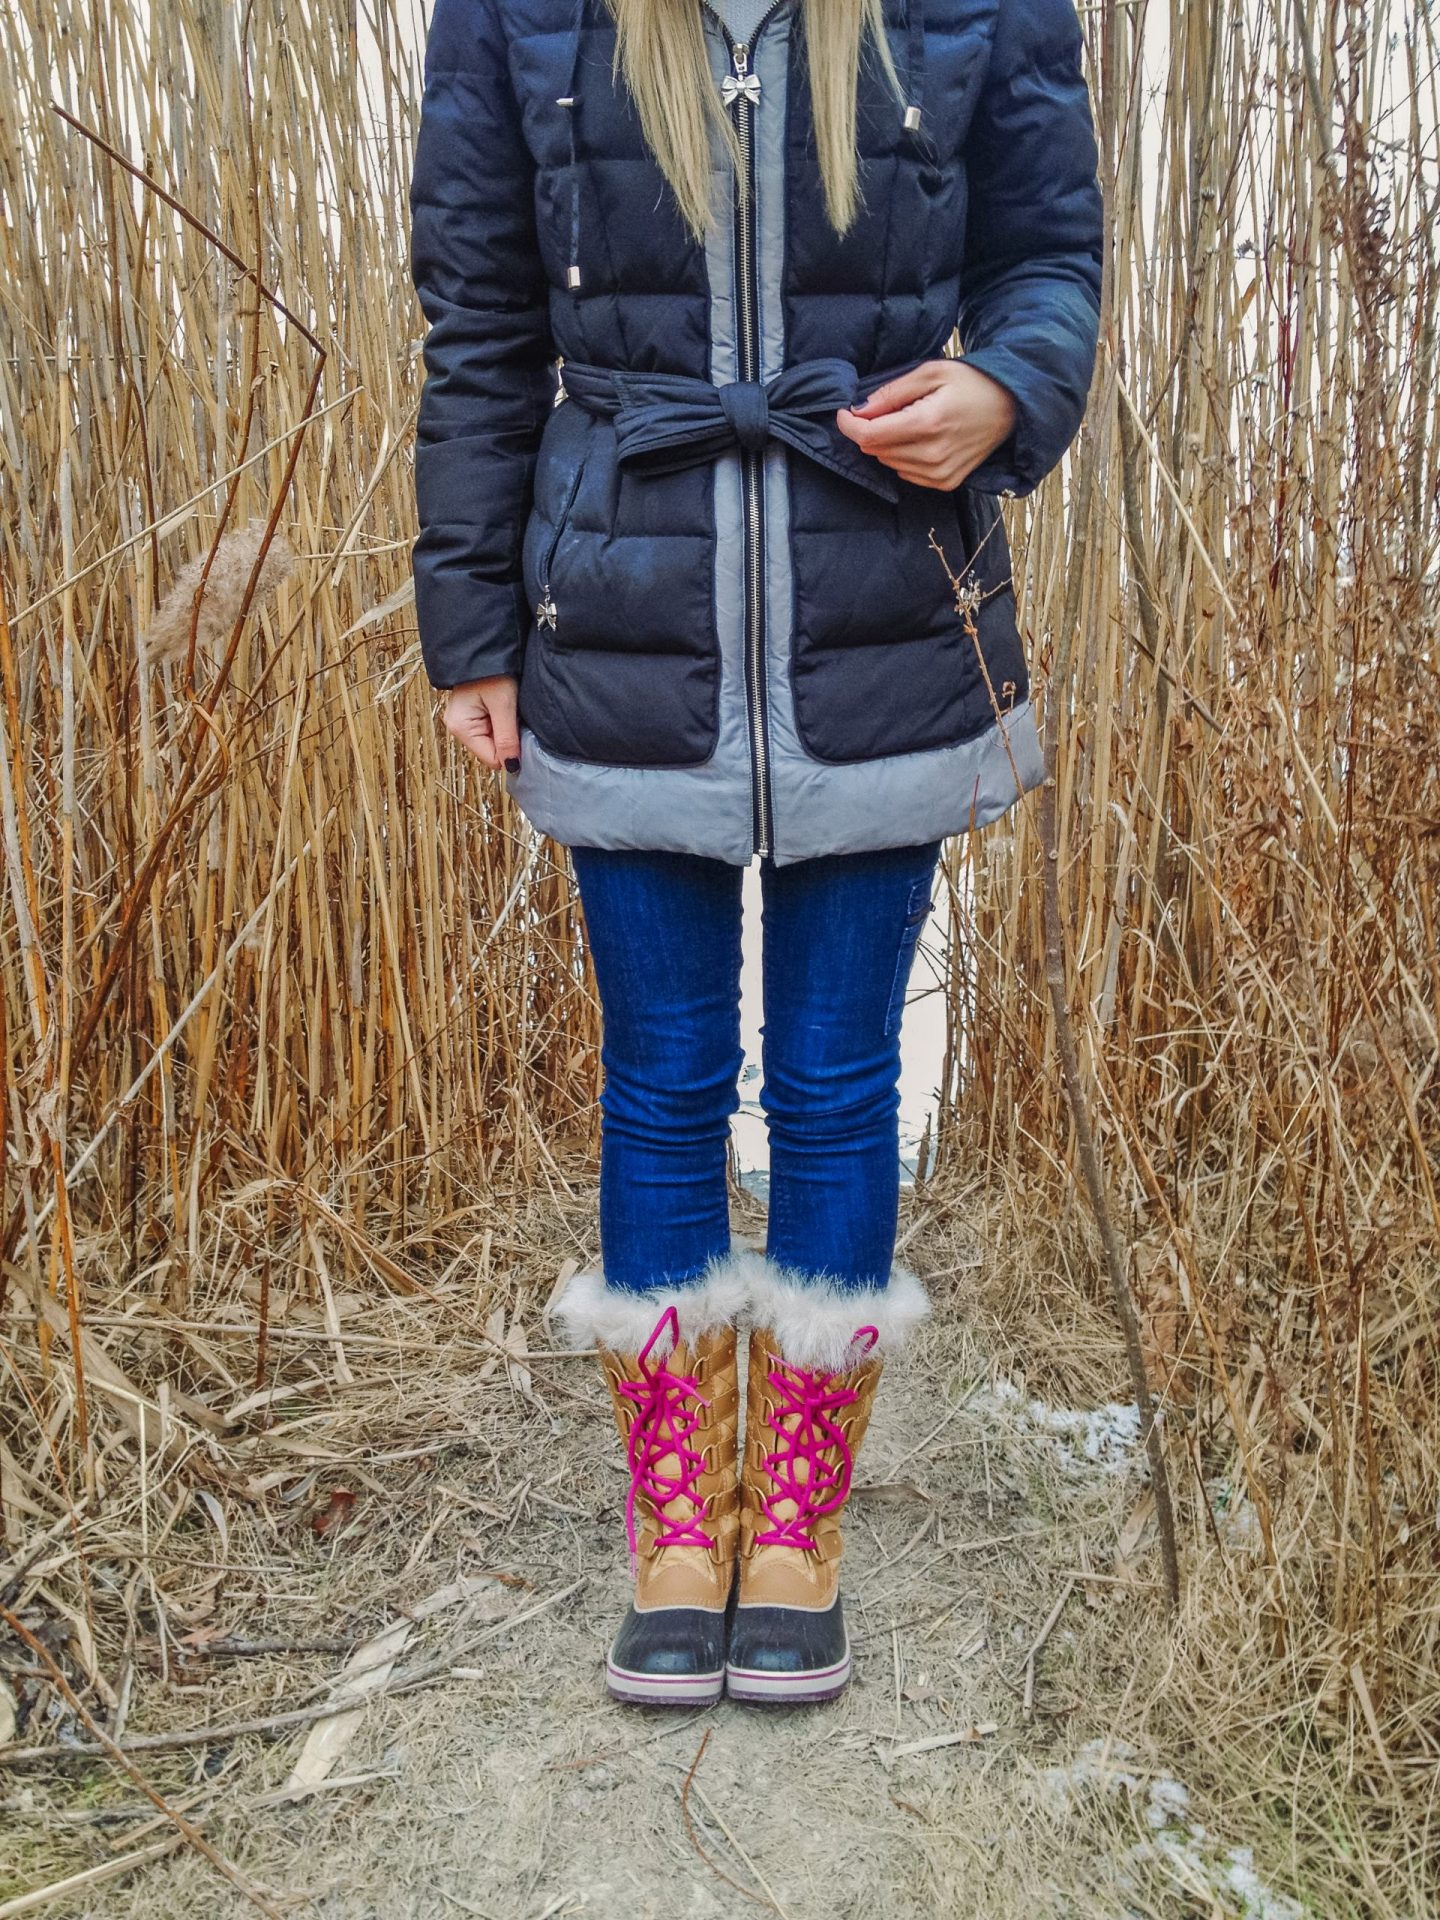 Tofino Sorel Boots with pink laces and skinny jeans